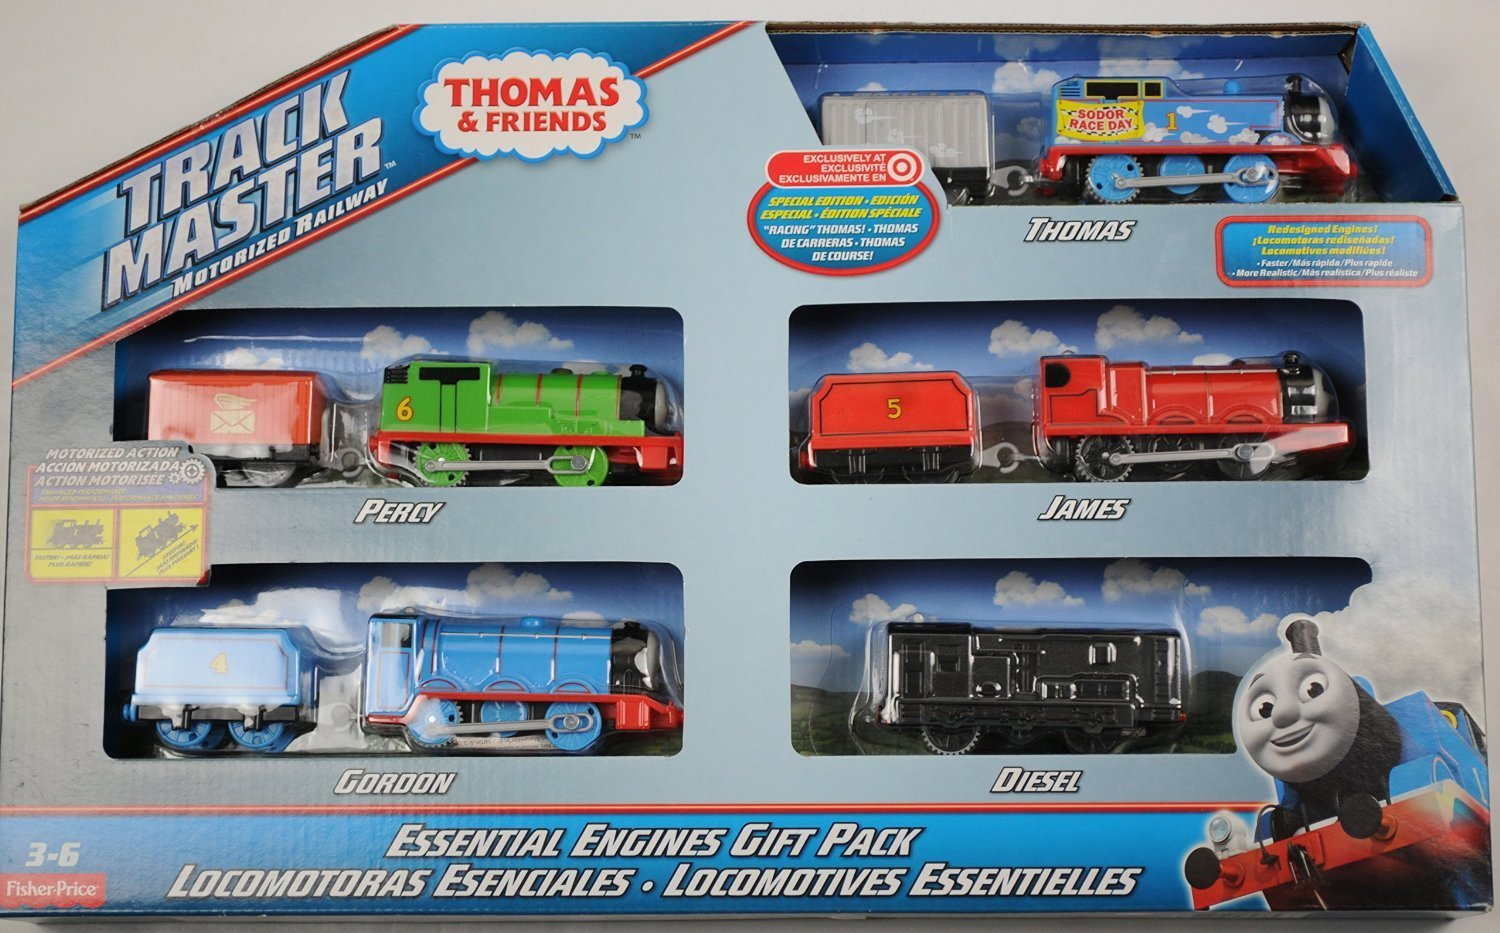 Target Toy Trains : Target thomas friends track master essentials engines